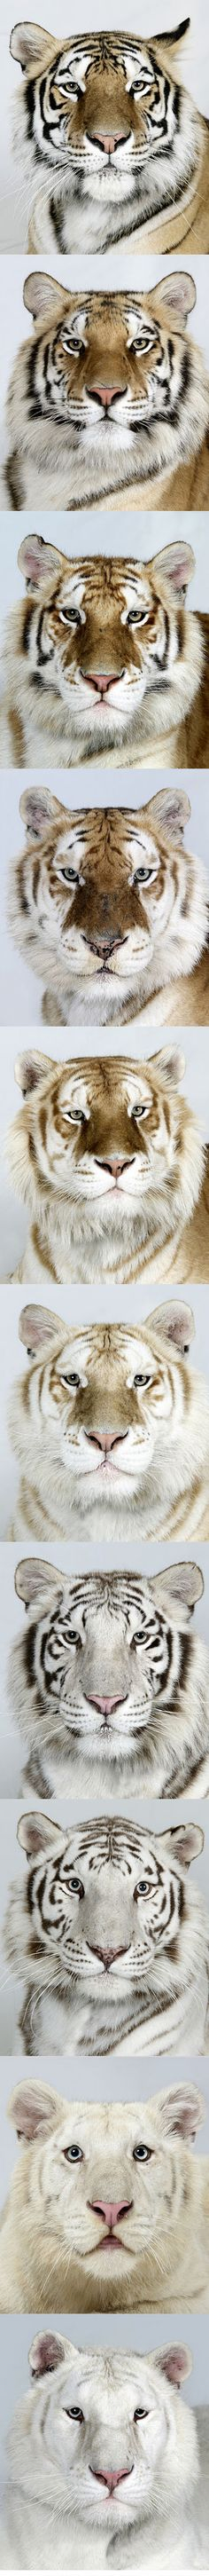 Tigers come in all kinds of wonderful colors!